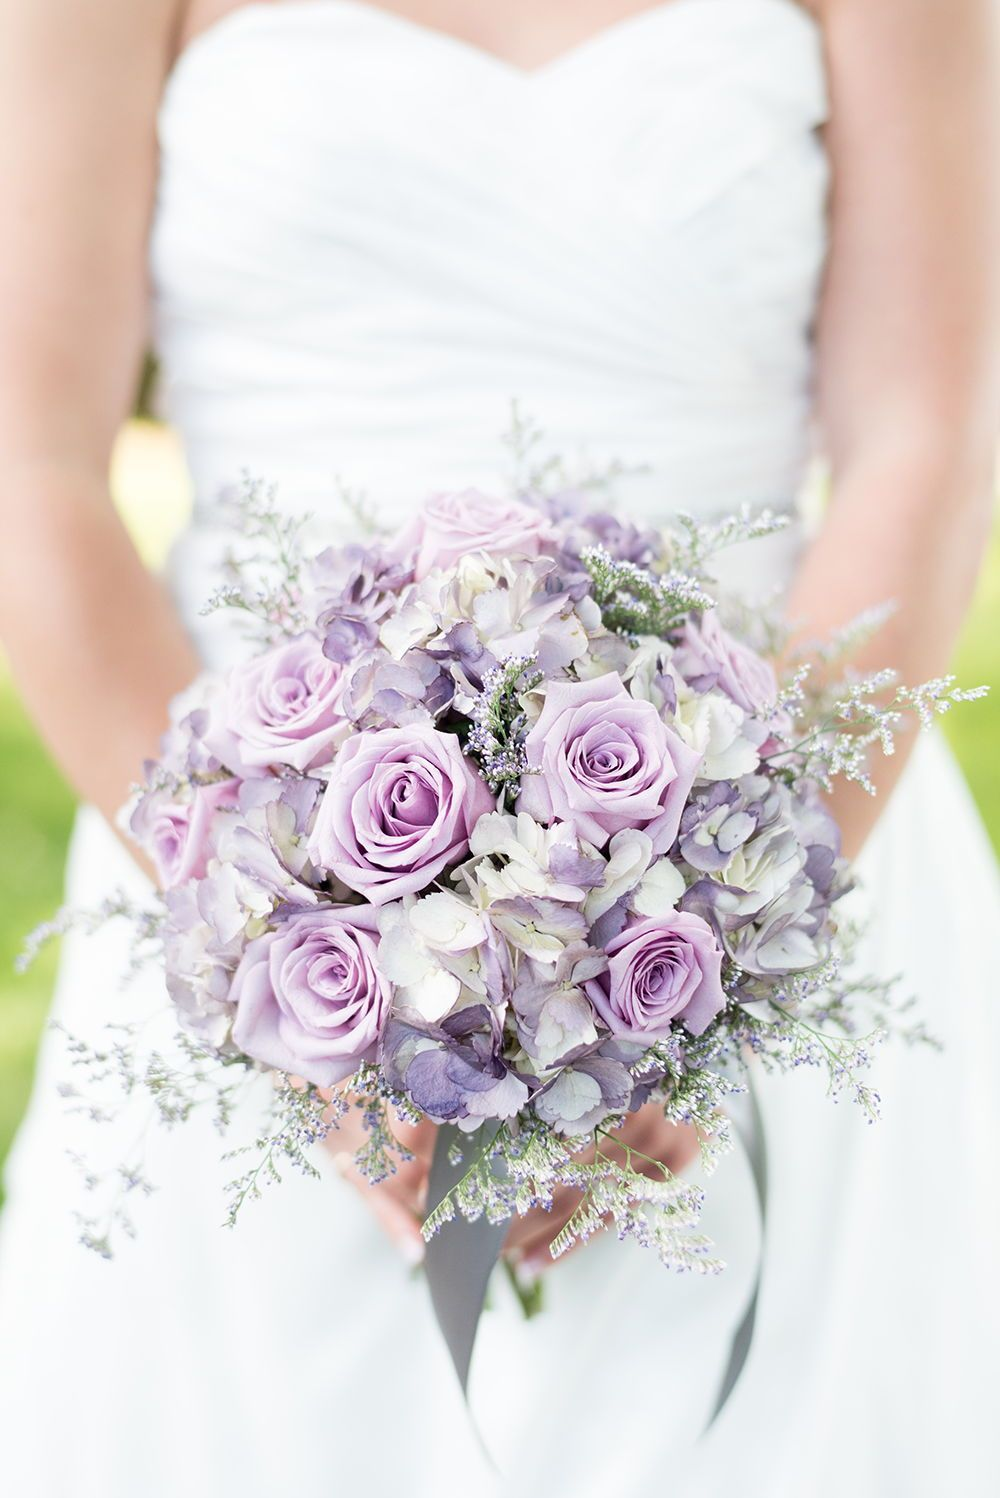 Pastel Purple Rose Wedding Bouquet Photos By Shane Hawkins Photography The Pink Bride Lilac Wedding Bouquet Purple Bride Bouquet Purple Wedding Bouquets